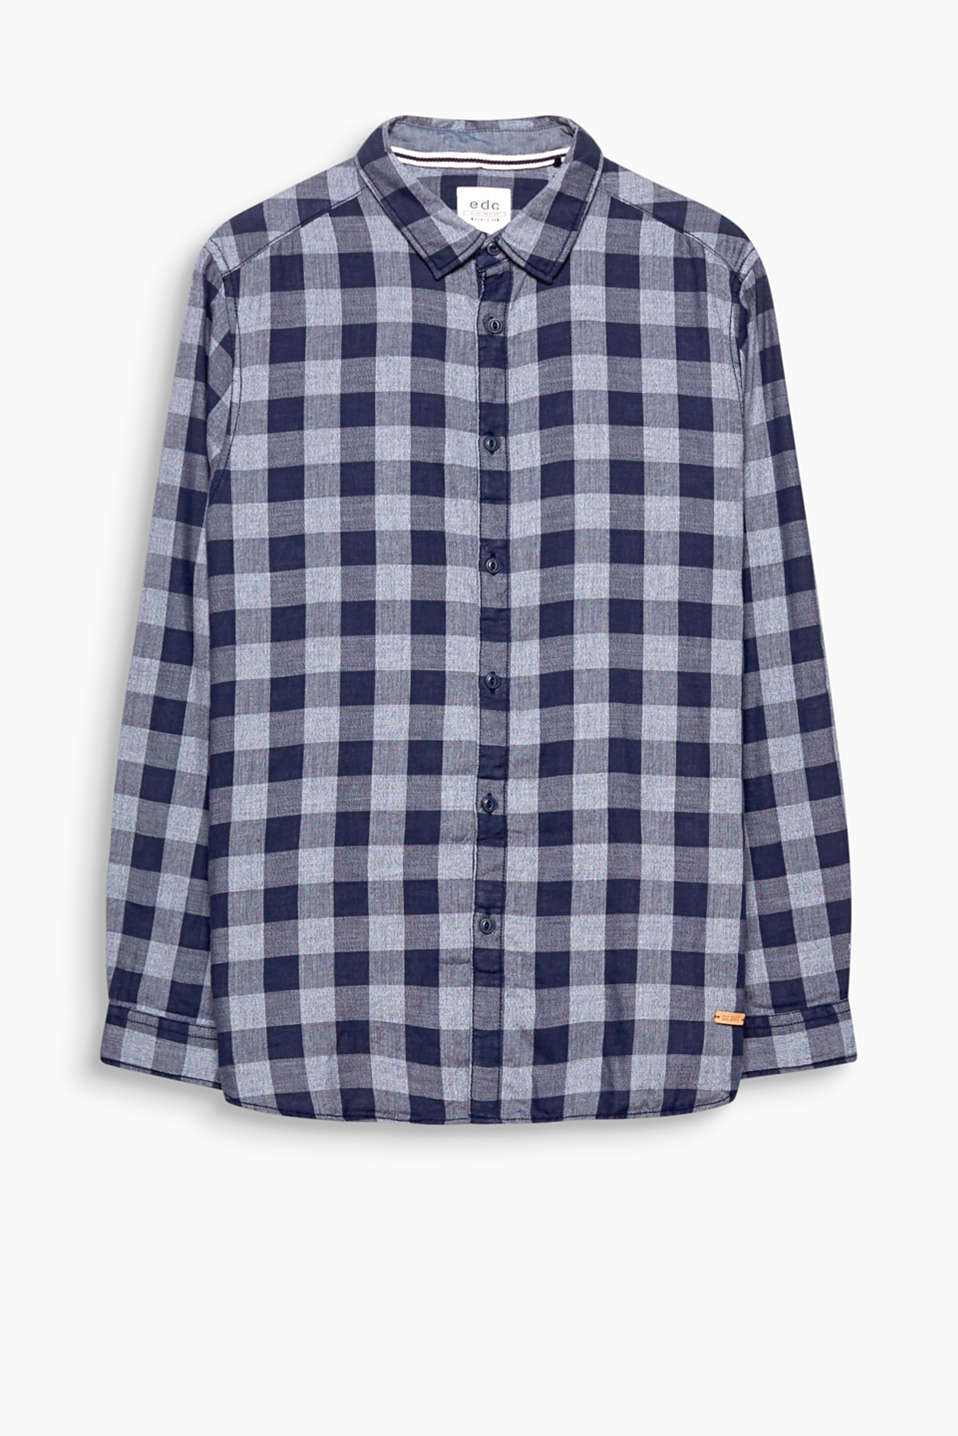 This check shirt in double-face fabric is particularly soft and comfy